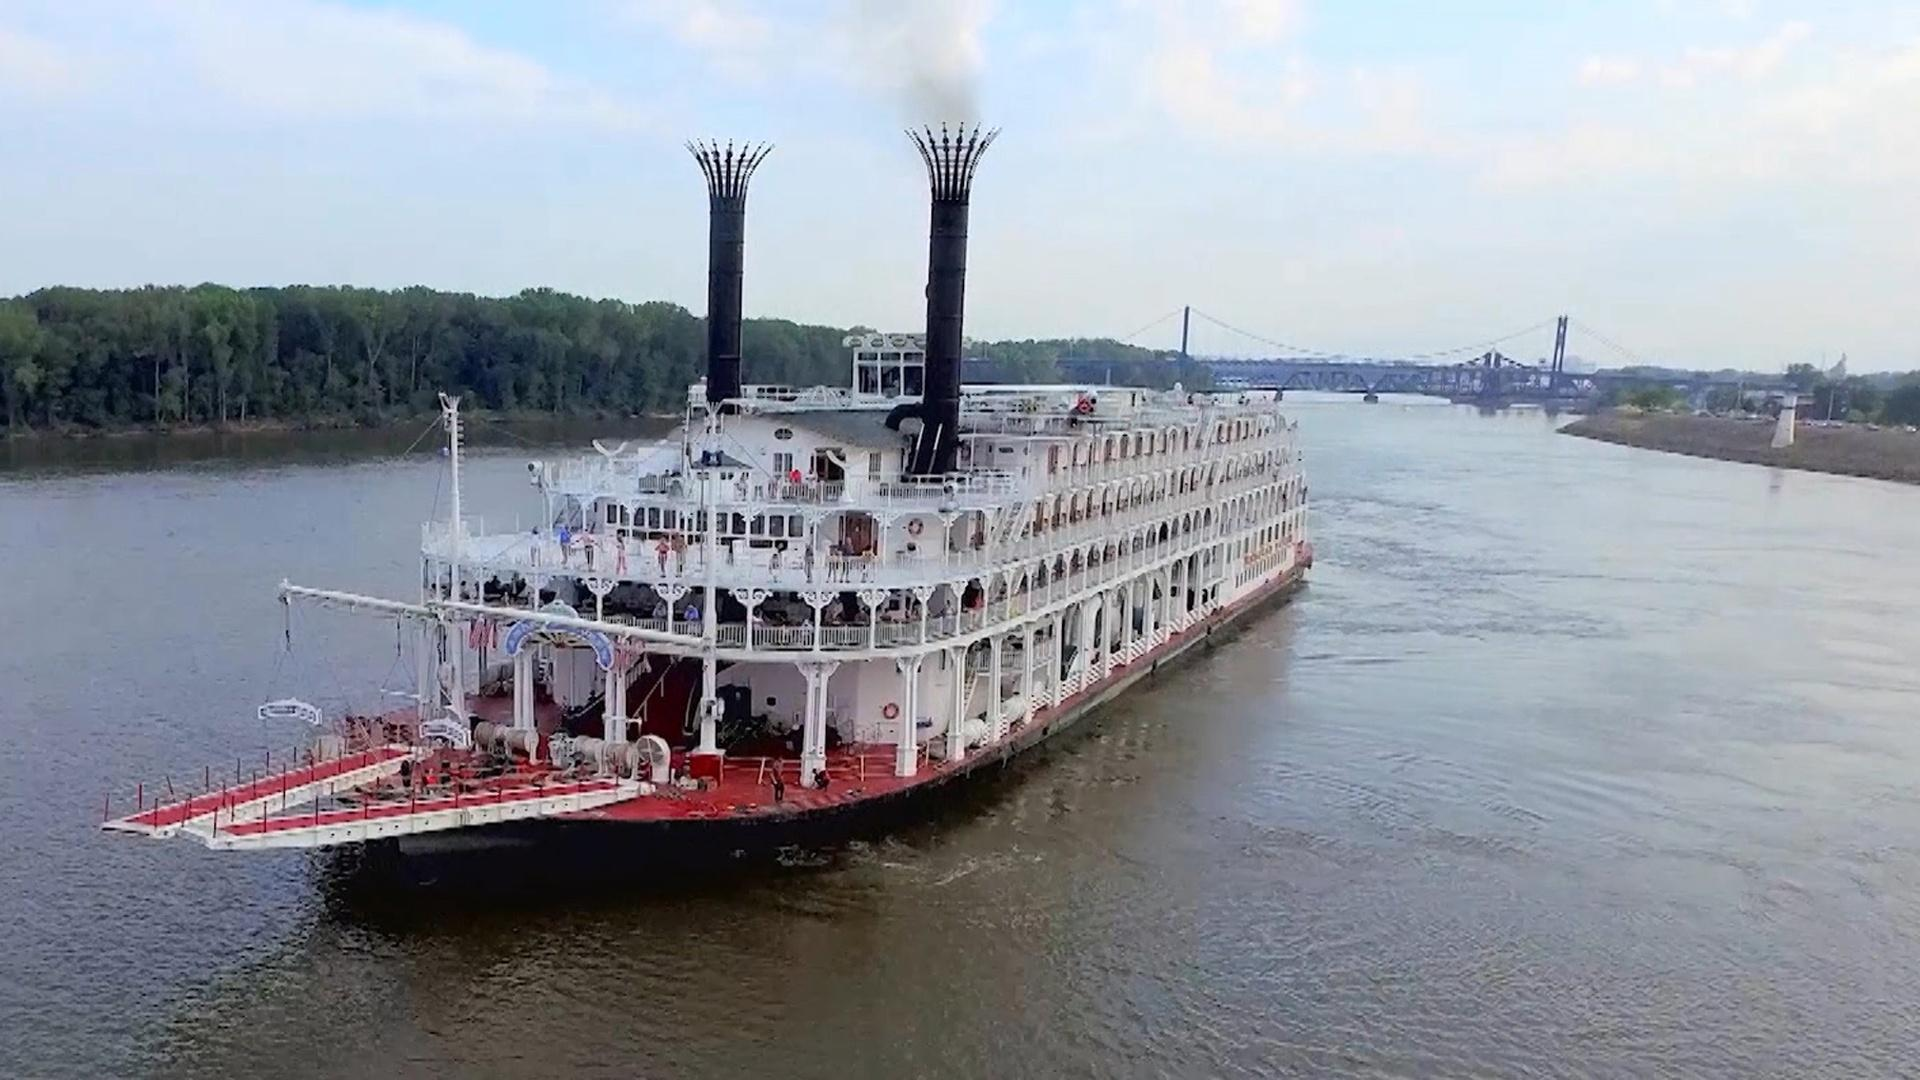 front view of the American Queen on the Mississippi